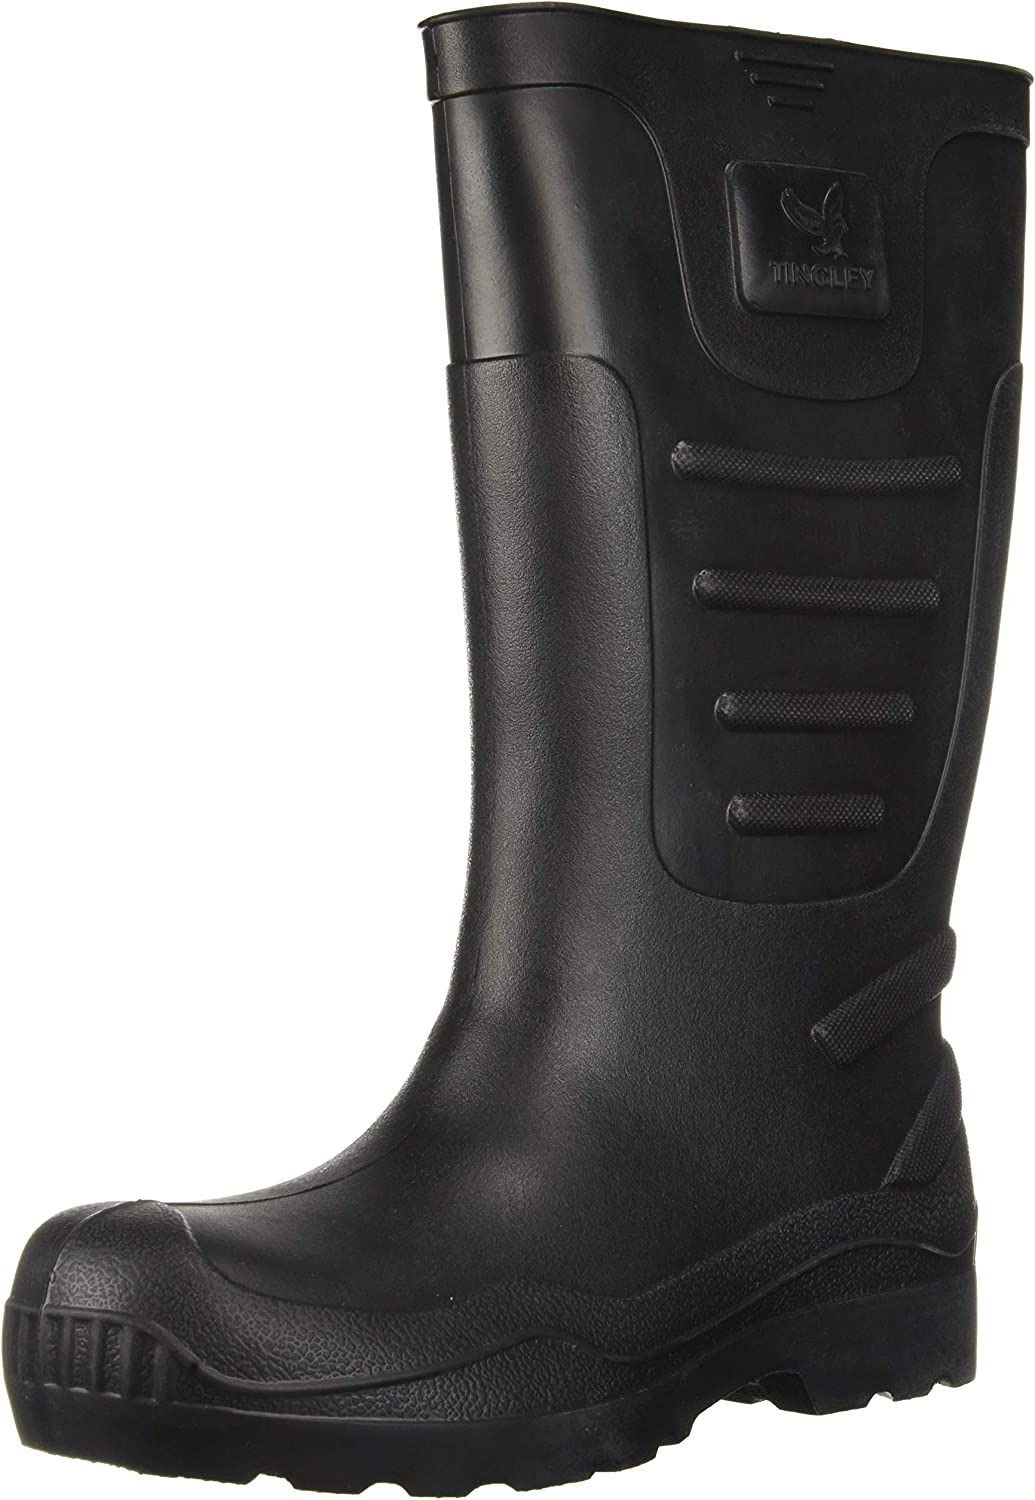 TINGLEY Men's Ultra Lightweight Snow Boot